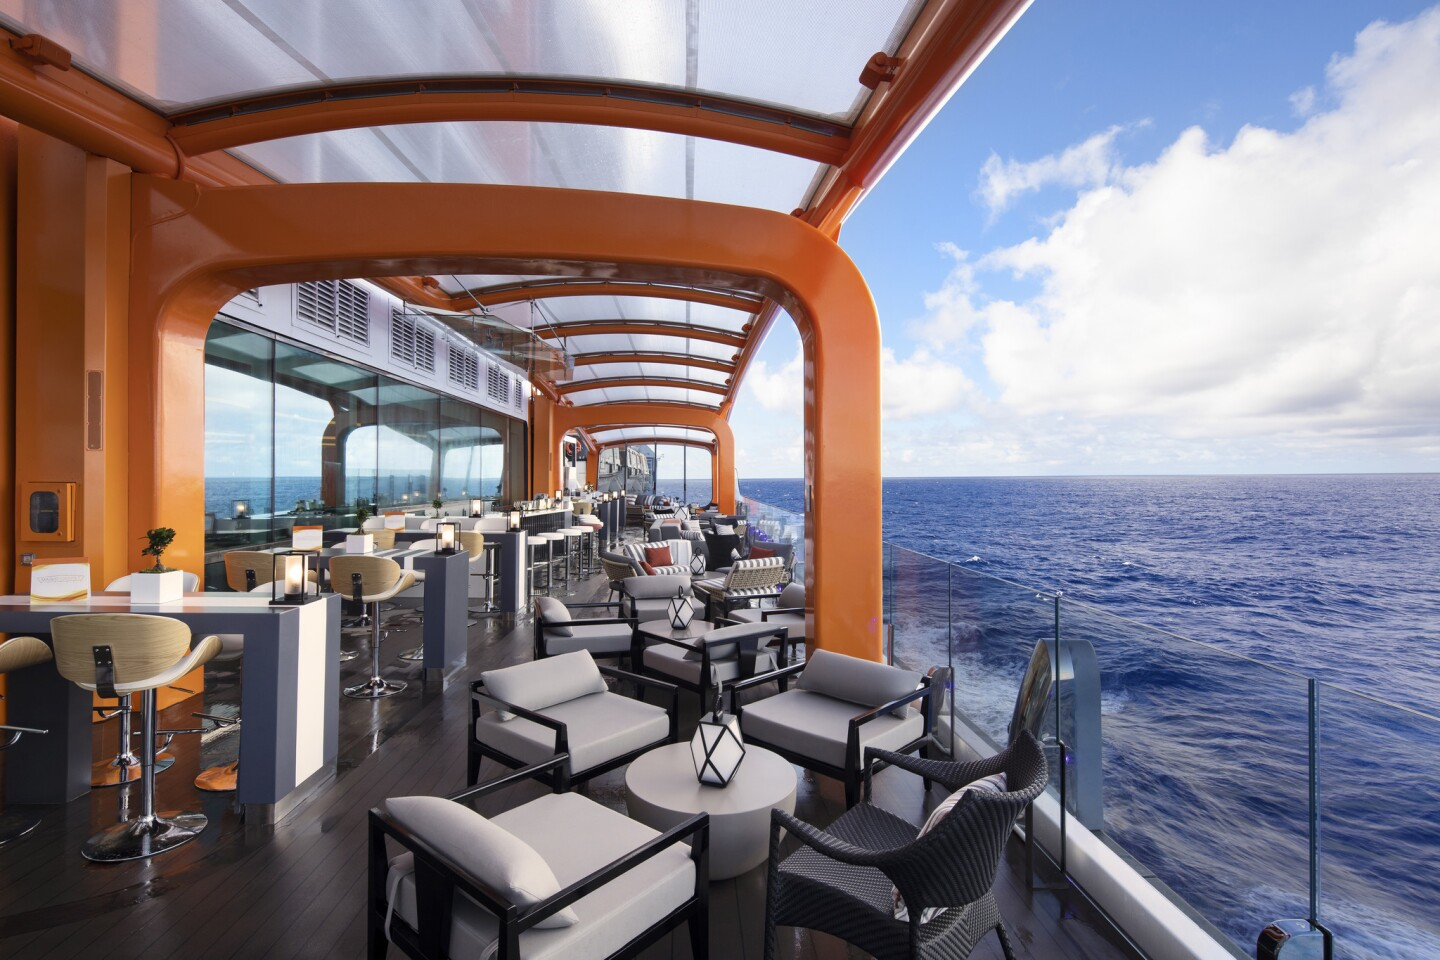 One of Celebrity Edge's most talked about innovations is the tangerine-colored Magic Carpet on the starboard side that can be lowered to Deck 2 -- for use with tenders to shore or raised as high as Deck 16, where it becomes a lounge.